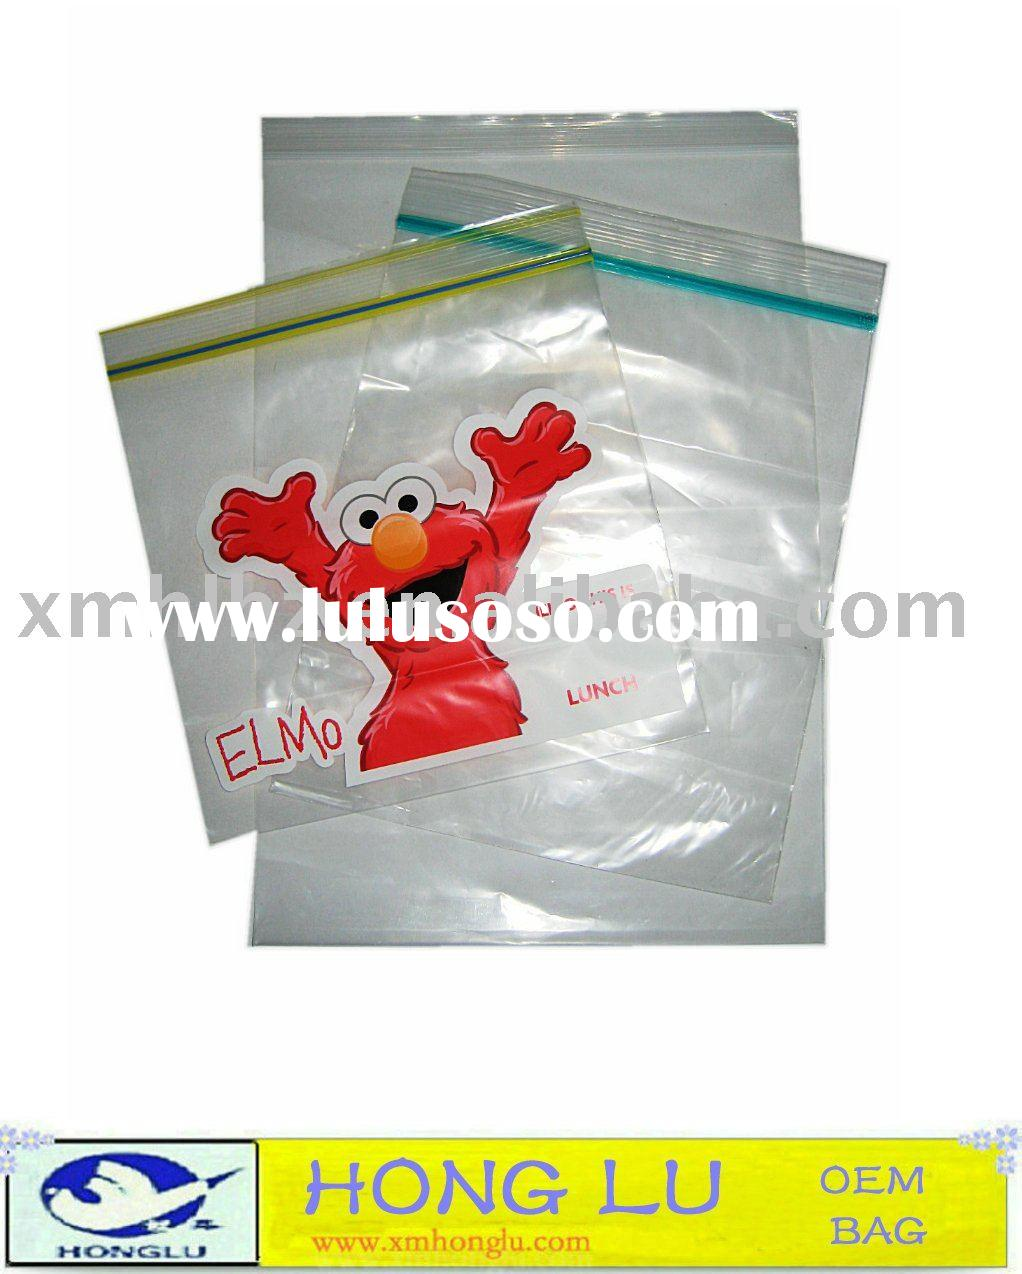 Self-adhesive Bag .packaging bag Value Bag,PE Bag